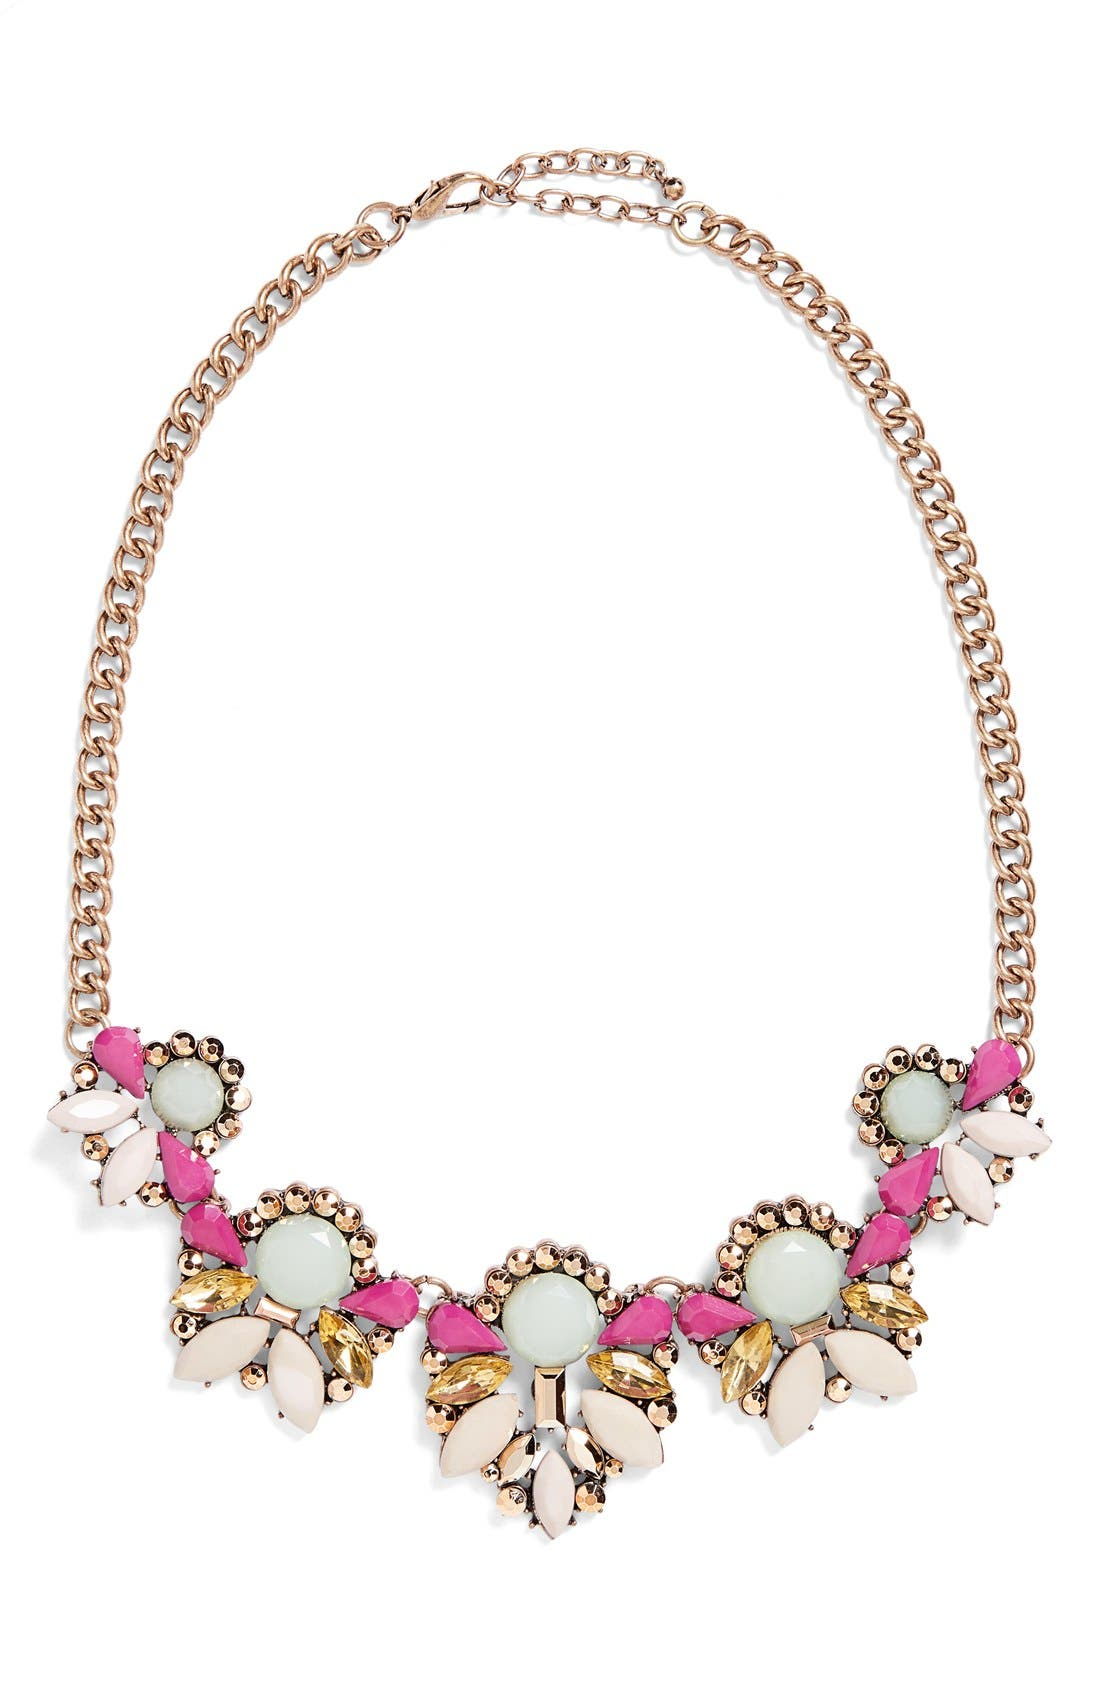 Main Image - Rove + Pearl Crystal Statement Necklace